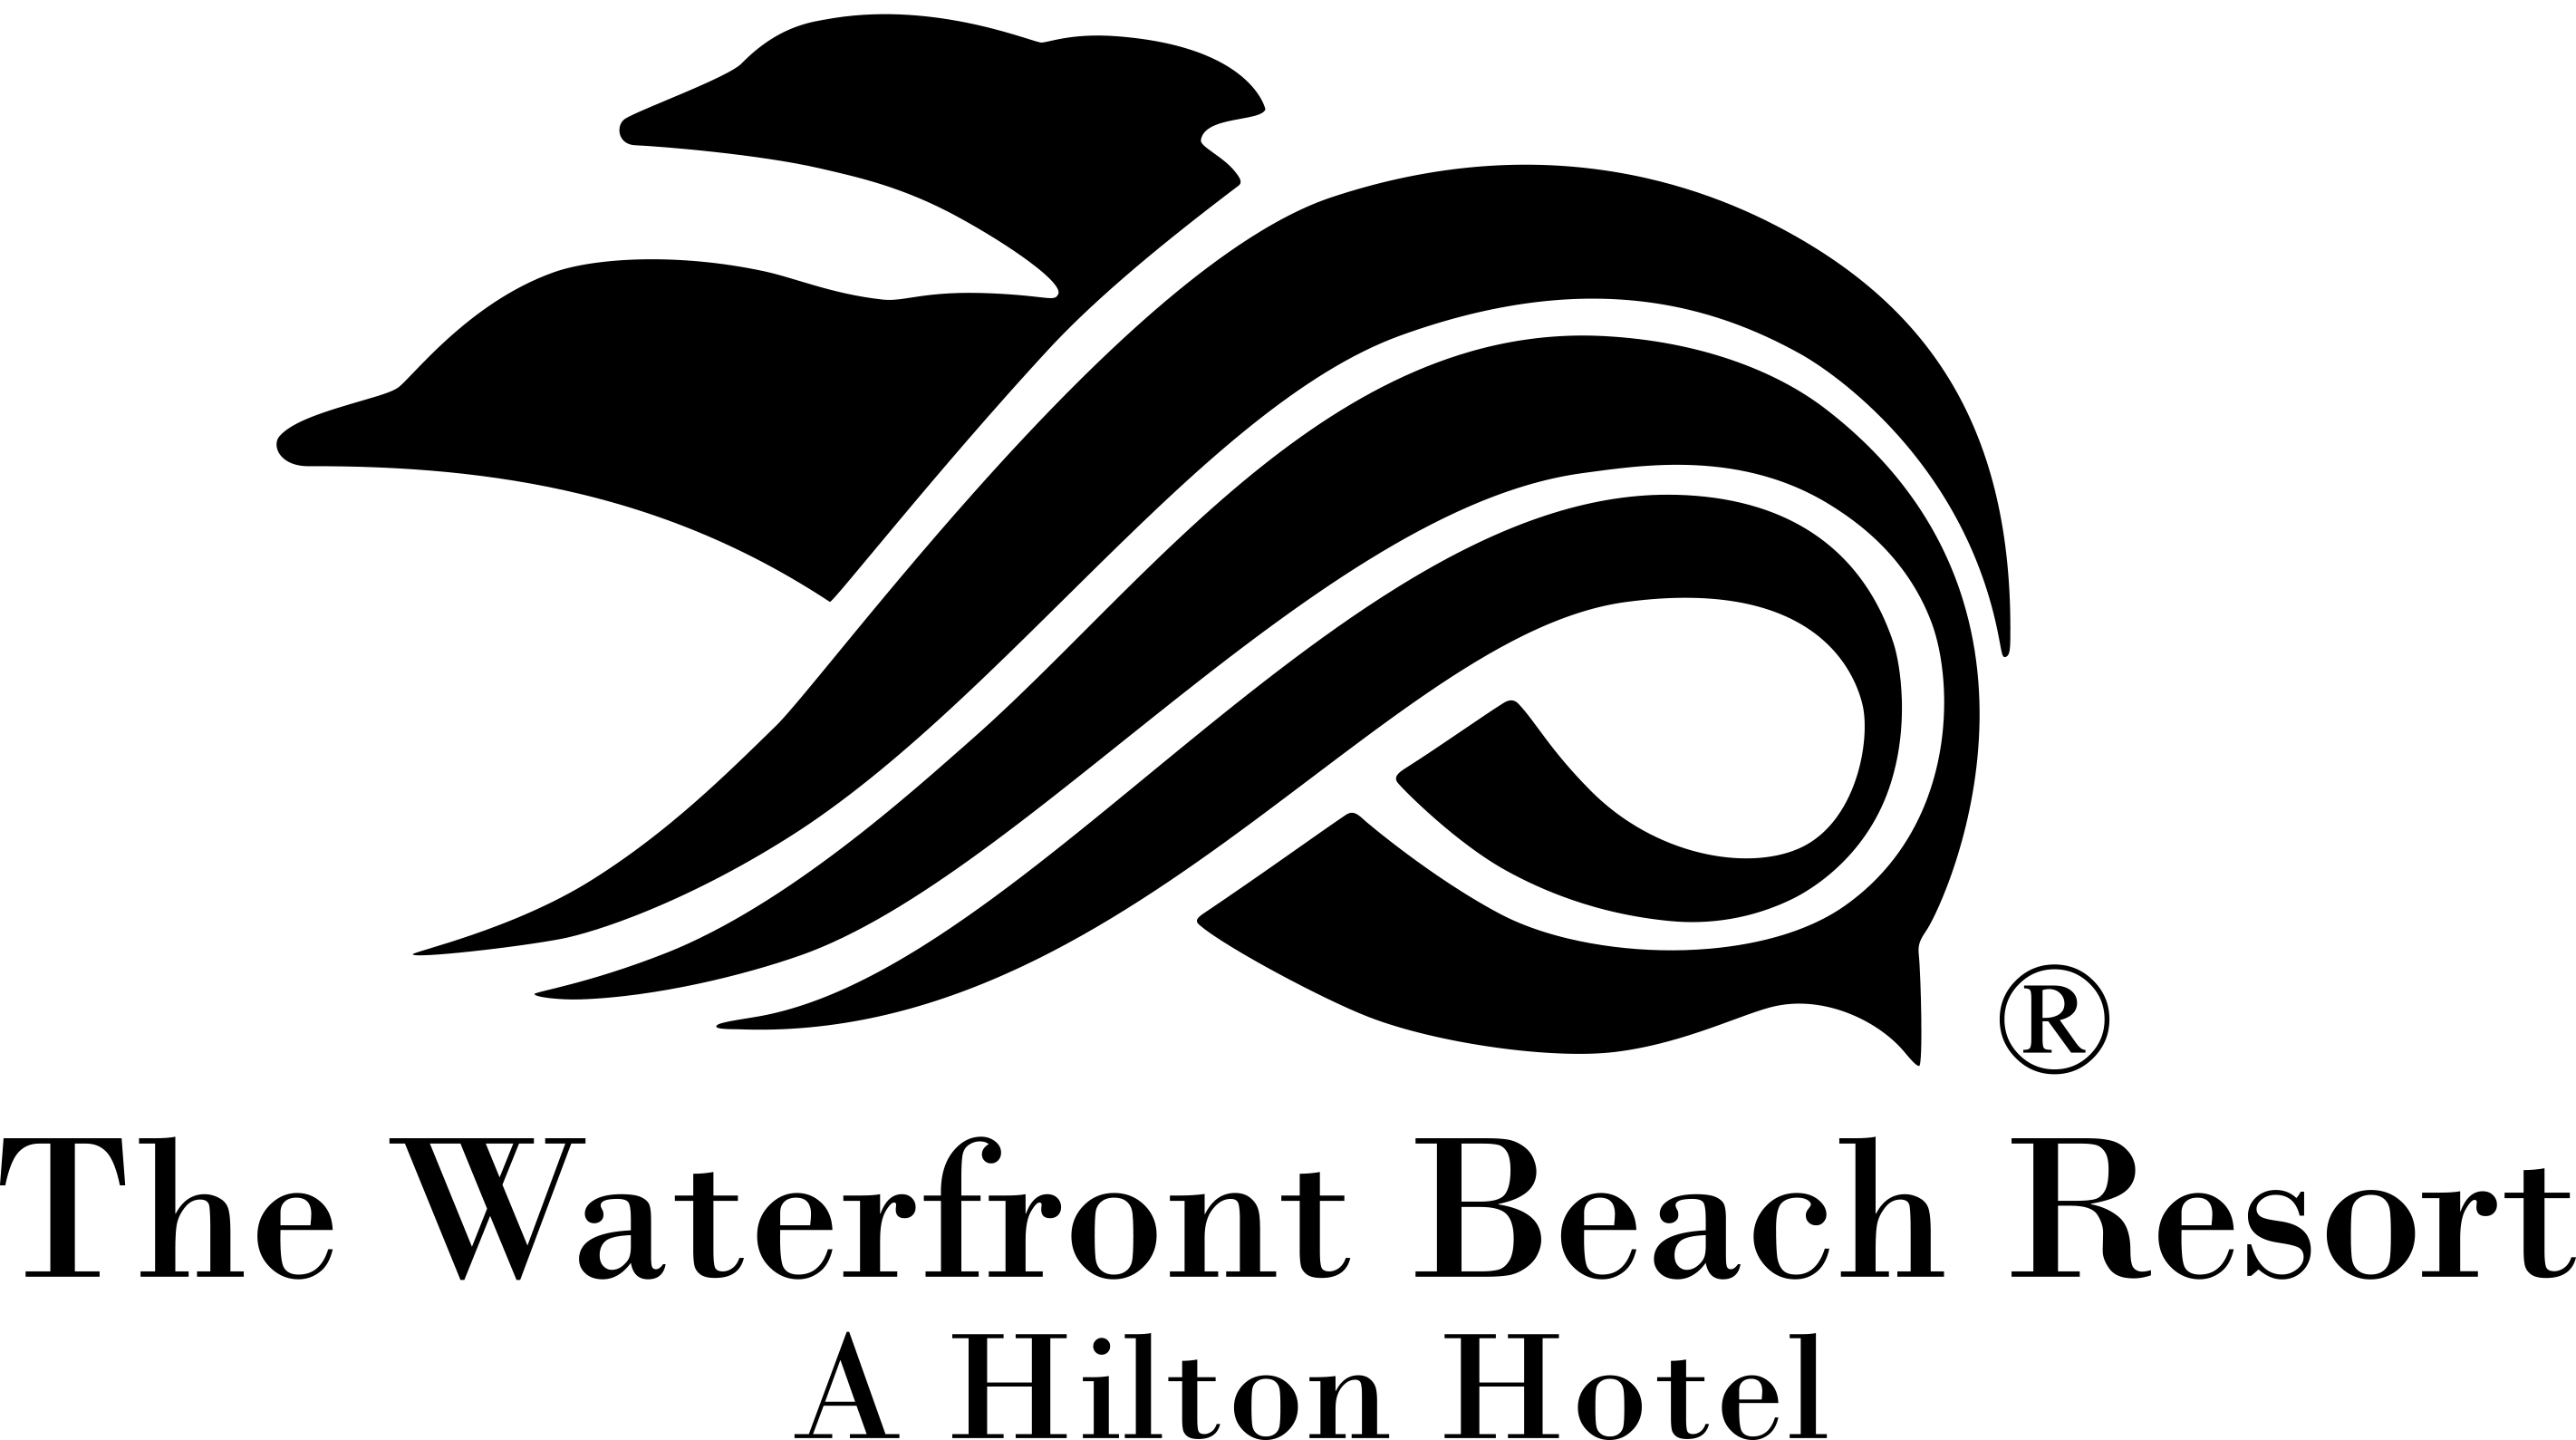 The Waterfront Beach Resort, a Hilton Hotel logo